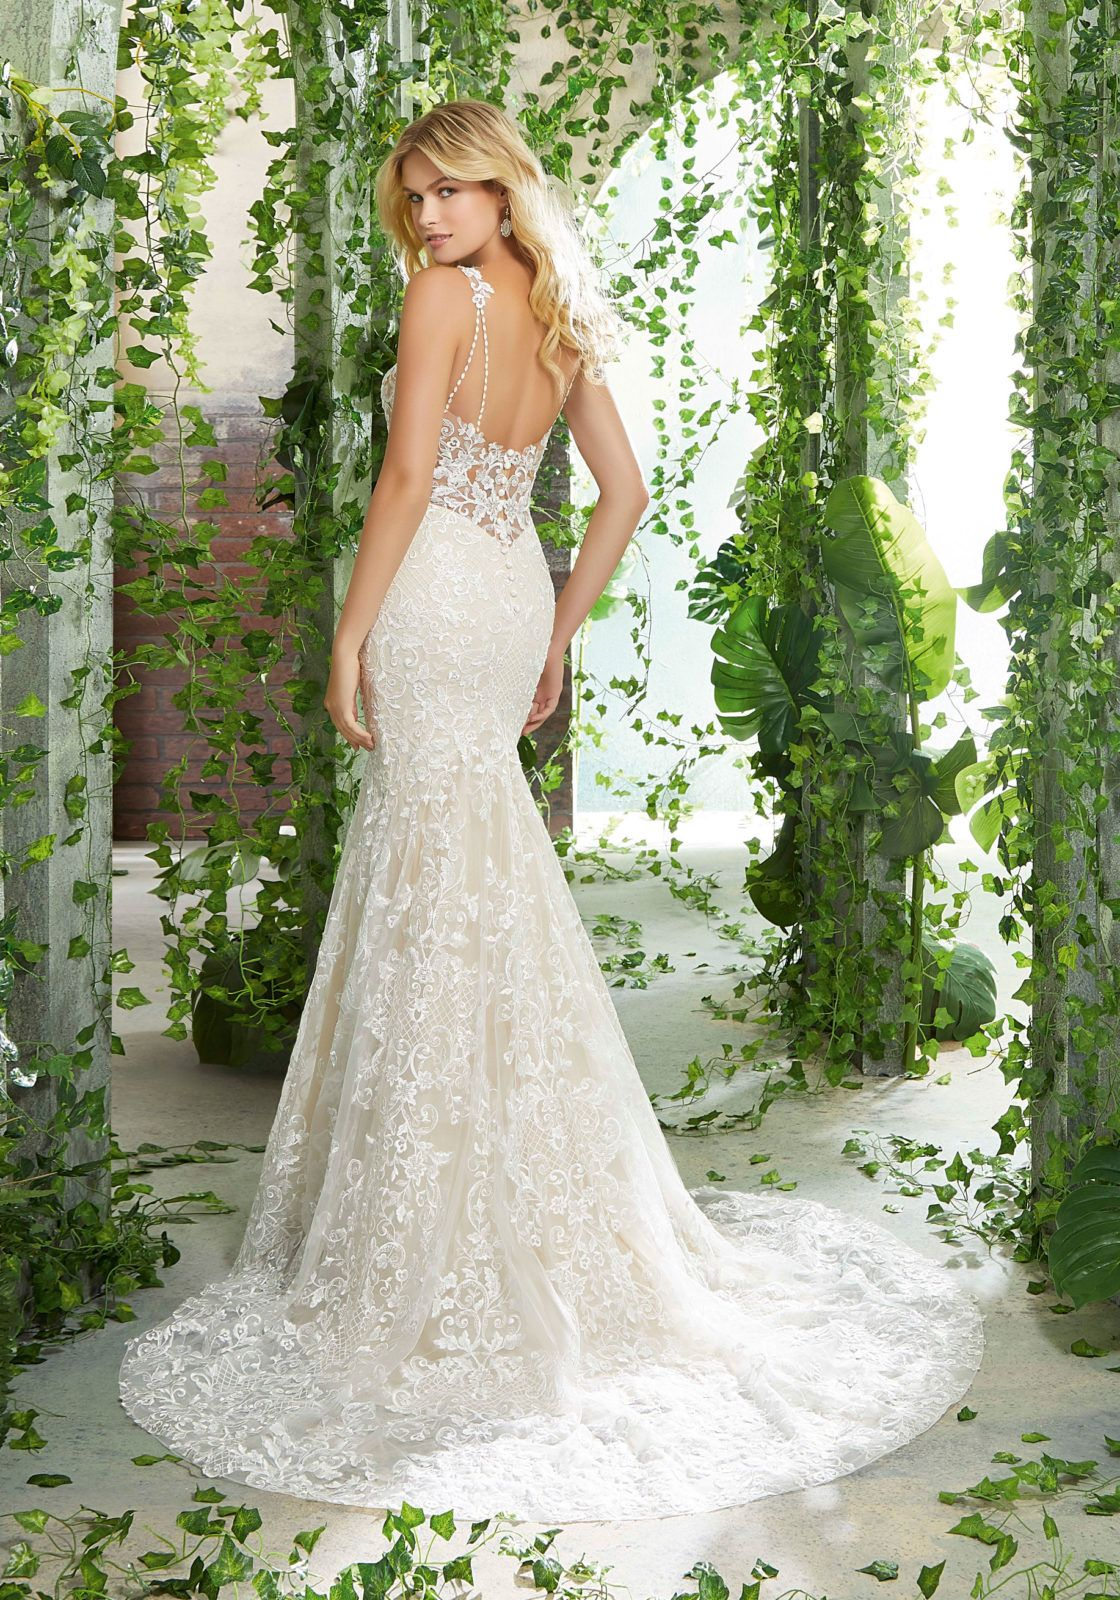 087cc2ea7 The 21 Best Places to Shop for Affordable Wedding Dresses